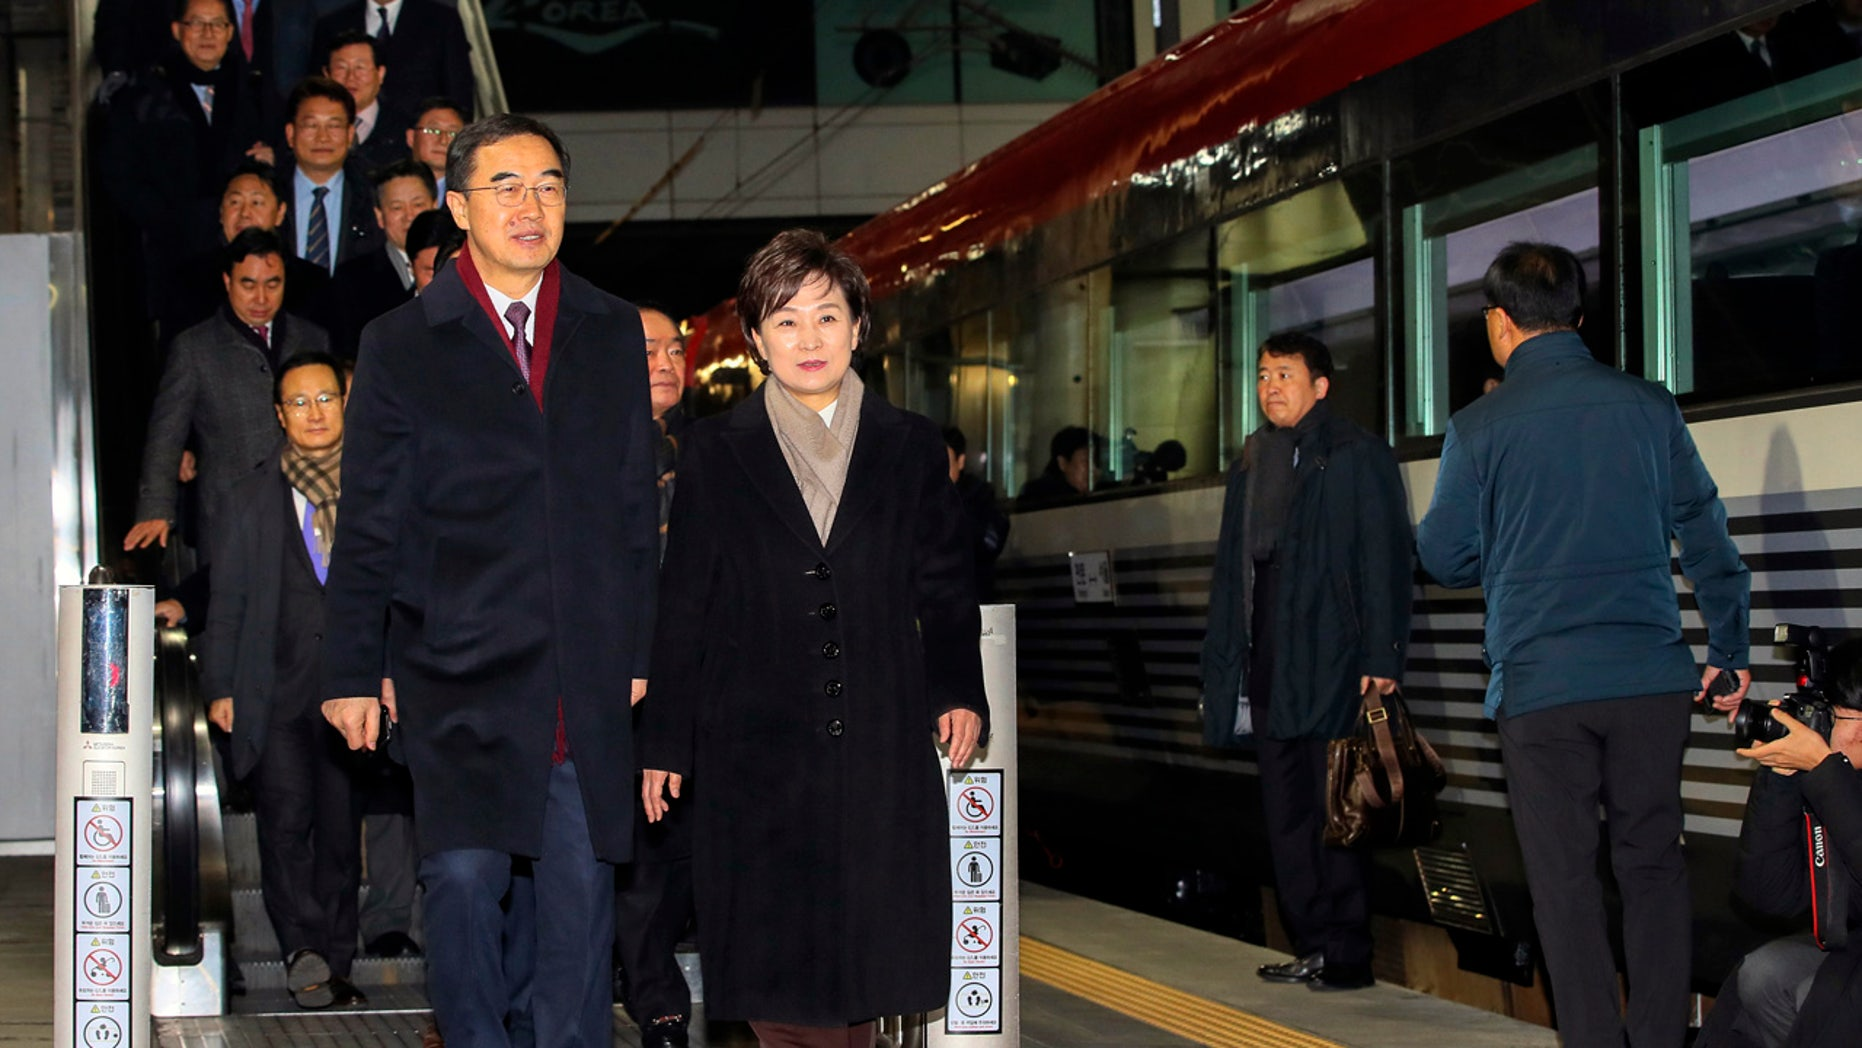 South Korean Unification Minister Cho Myoung-gyon, bottom left, and officials arrive to board a train to leave for North Korea at the Seoul Railway Station in Seoul, South Korea, Wednesday, Dec. 26, 2018. (Jin Sung-chul/Yonhap via AP)